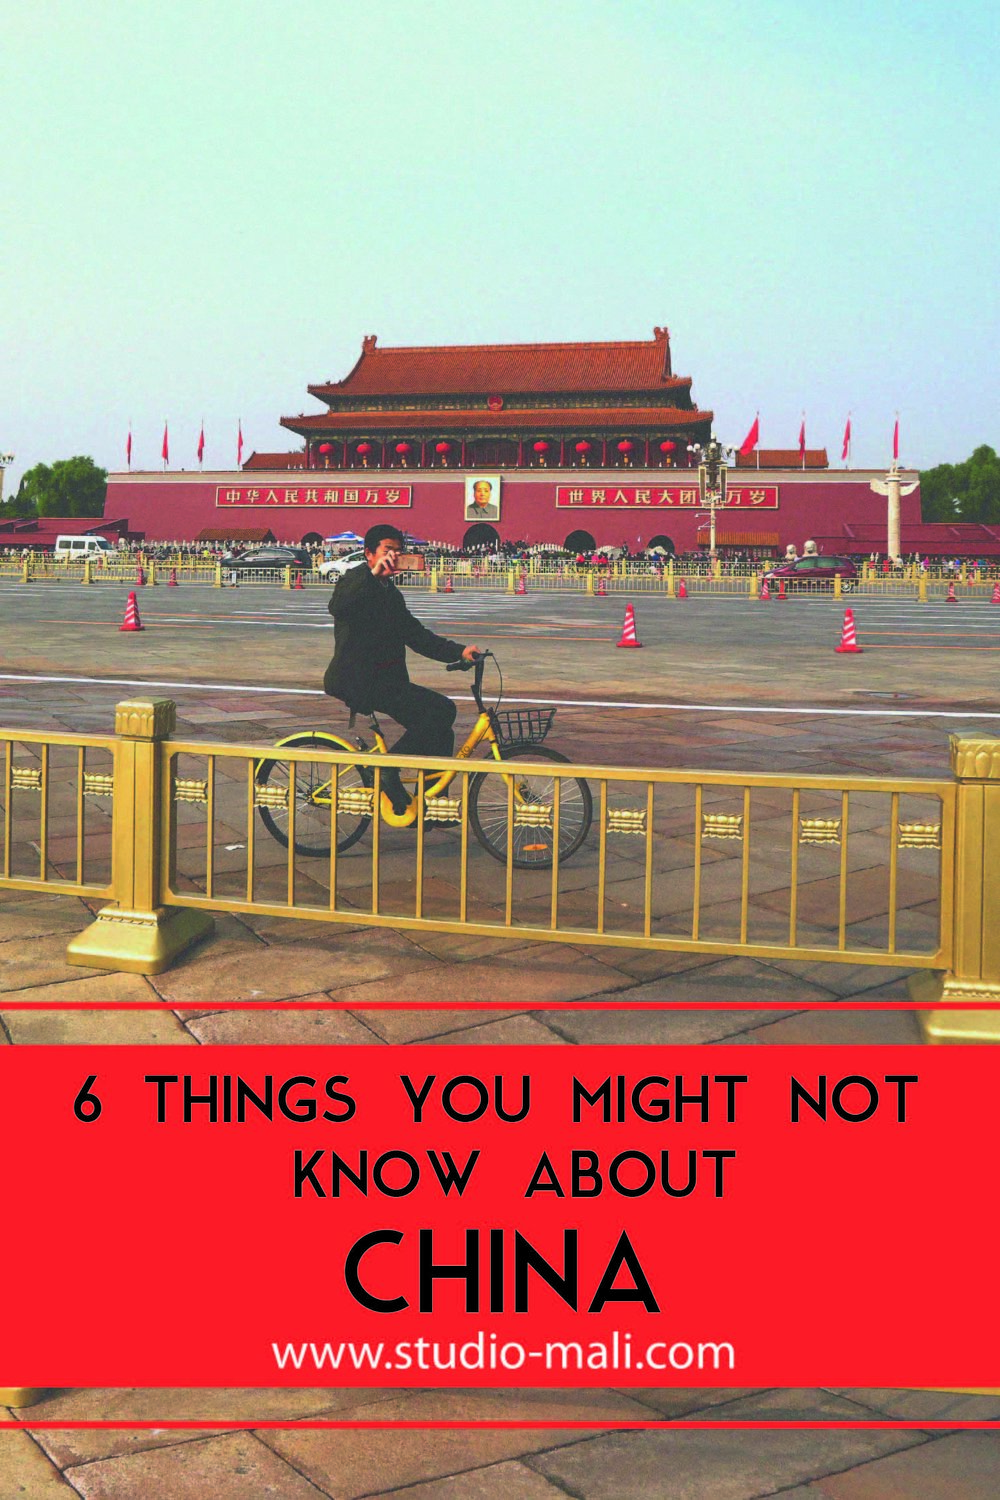 6 things you might not know about China